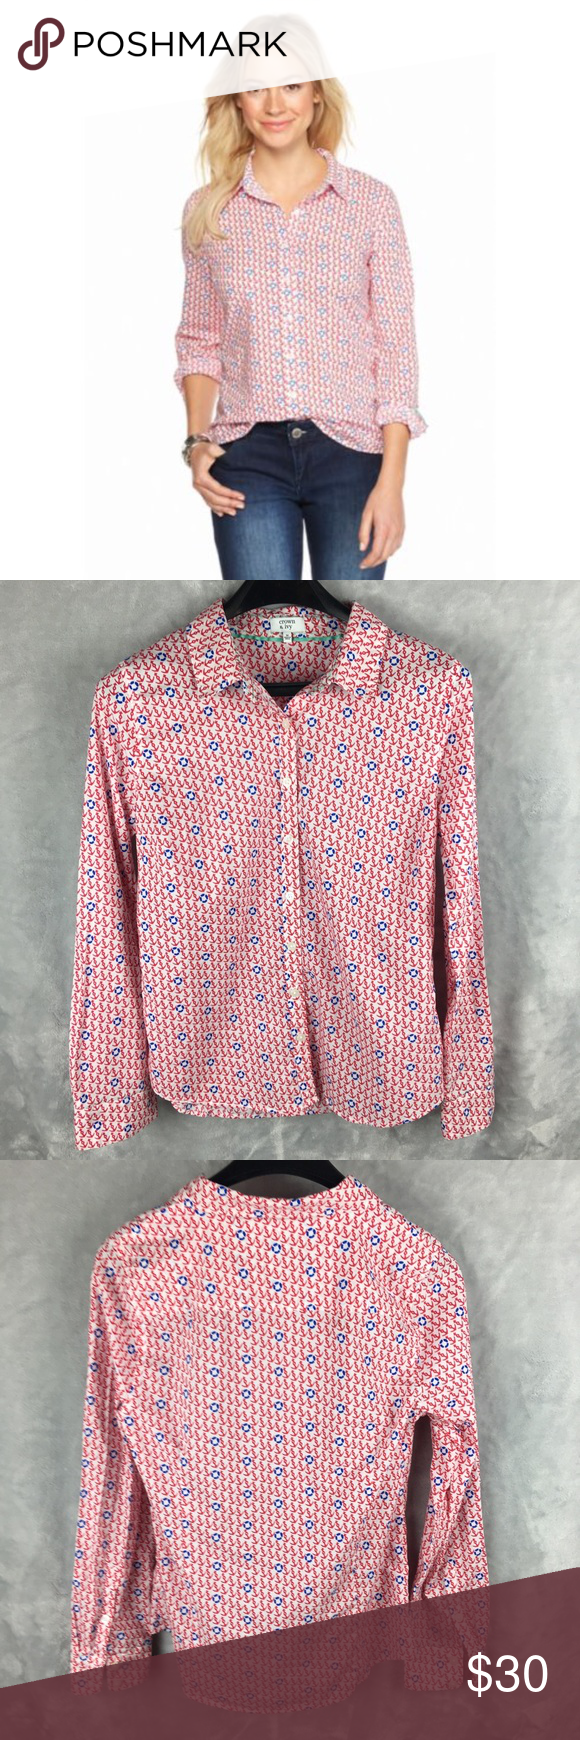 Pink dress shirt blue suit  CROWN u IVY Shirt Anchors Printed Button Front  Anchor print Crown